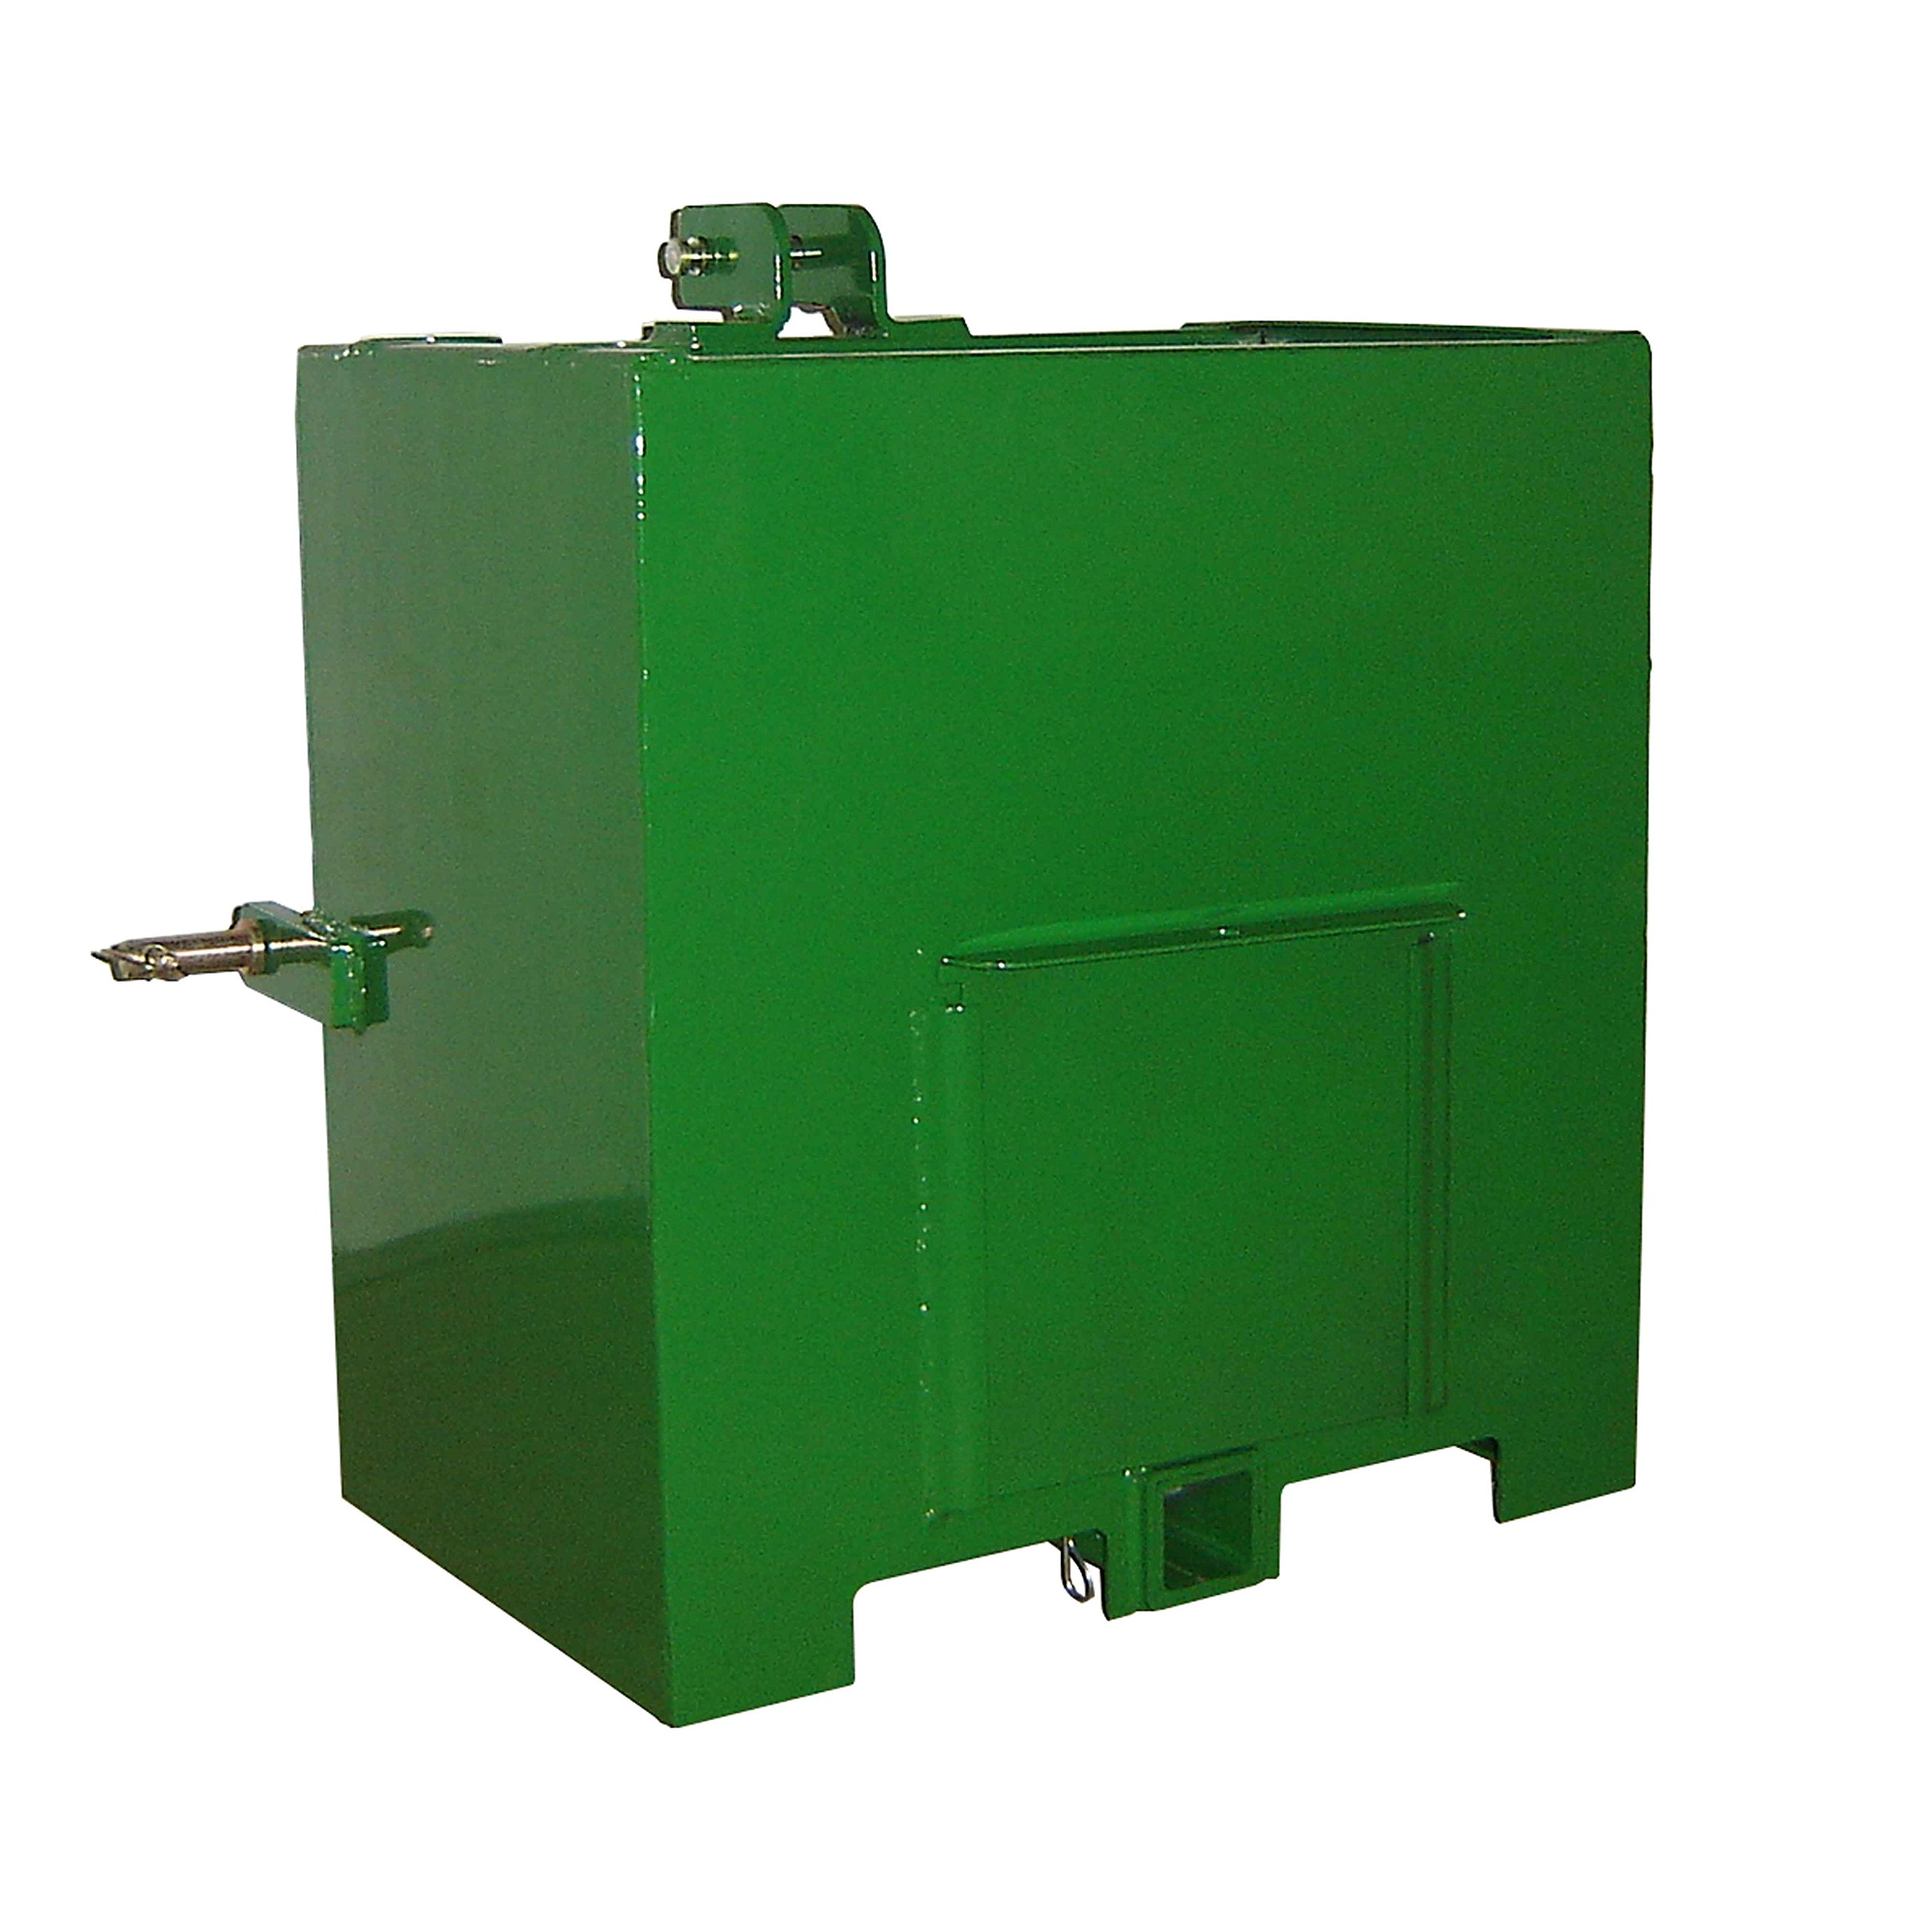 Titan Category 1 Ballast Box 3 Point Cat 1 Fits John Deere Tractors by Titan Attachments